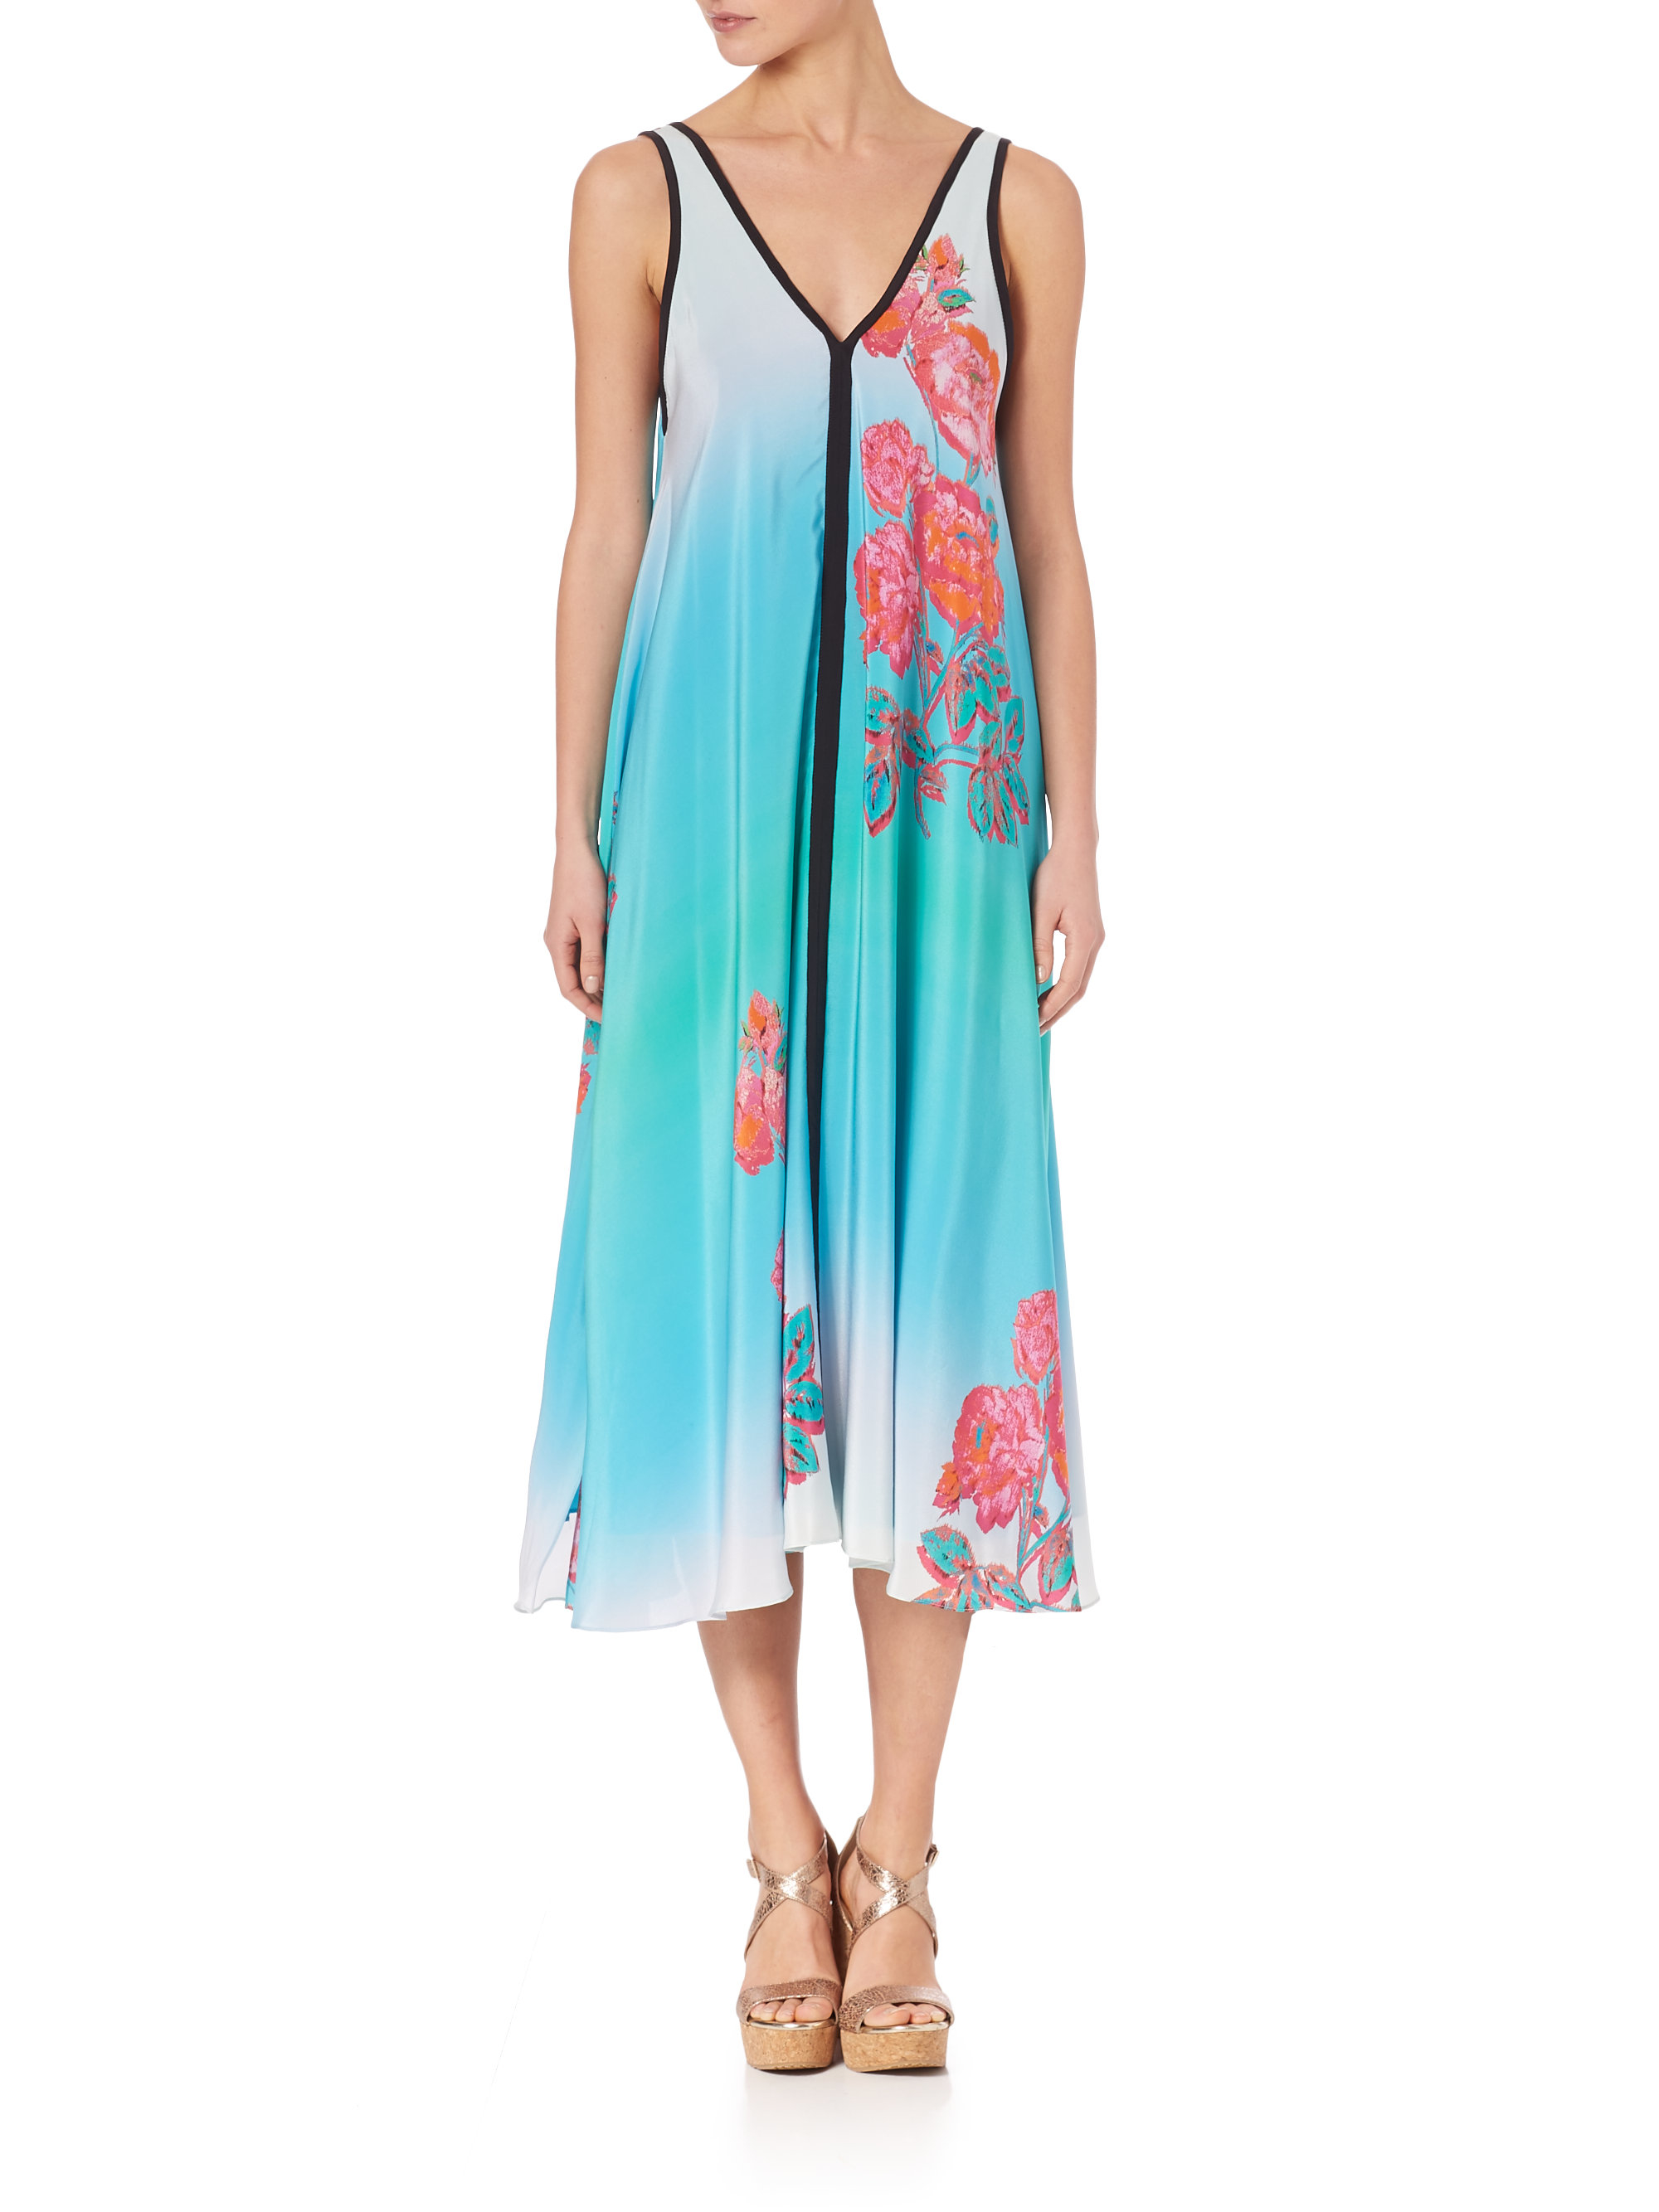 Lyst - Nanette Lepore After Party Dress in Blue